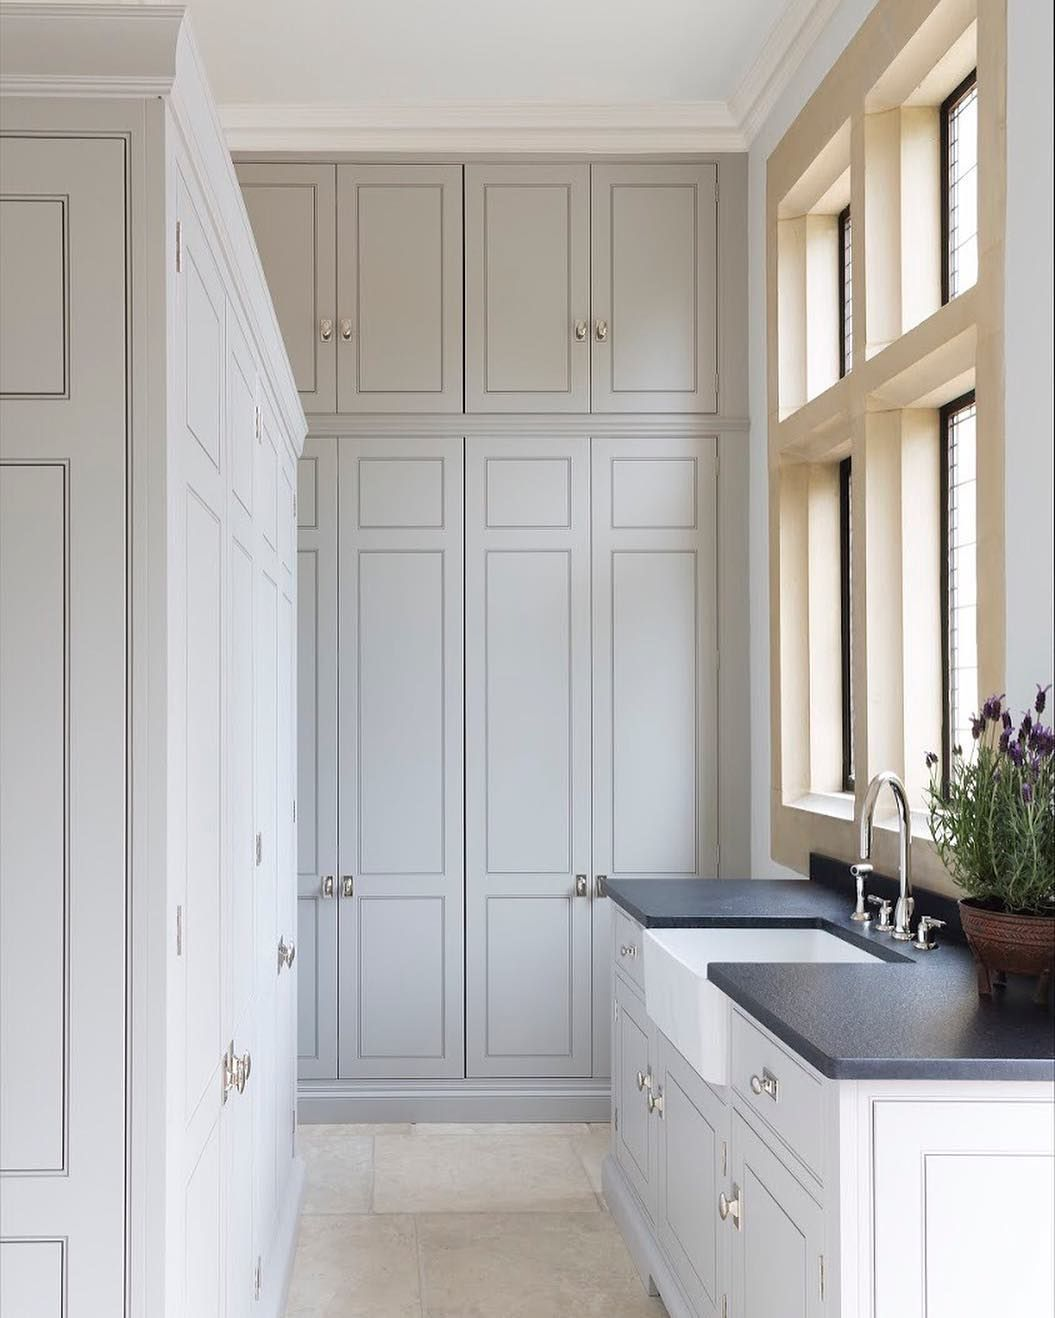 Super High Super Fly These Spenlow Cabinets Go Right To The Ceiling And Contain Masses Of Storage For Us Bespoke Kitchens Floor To Ceiling Cabinets Home